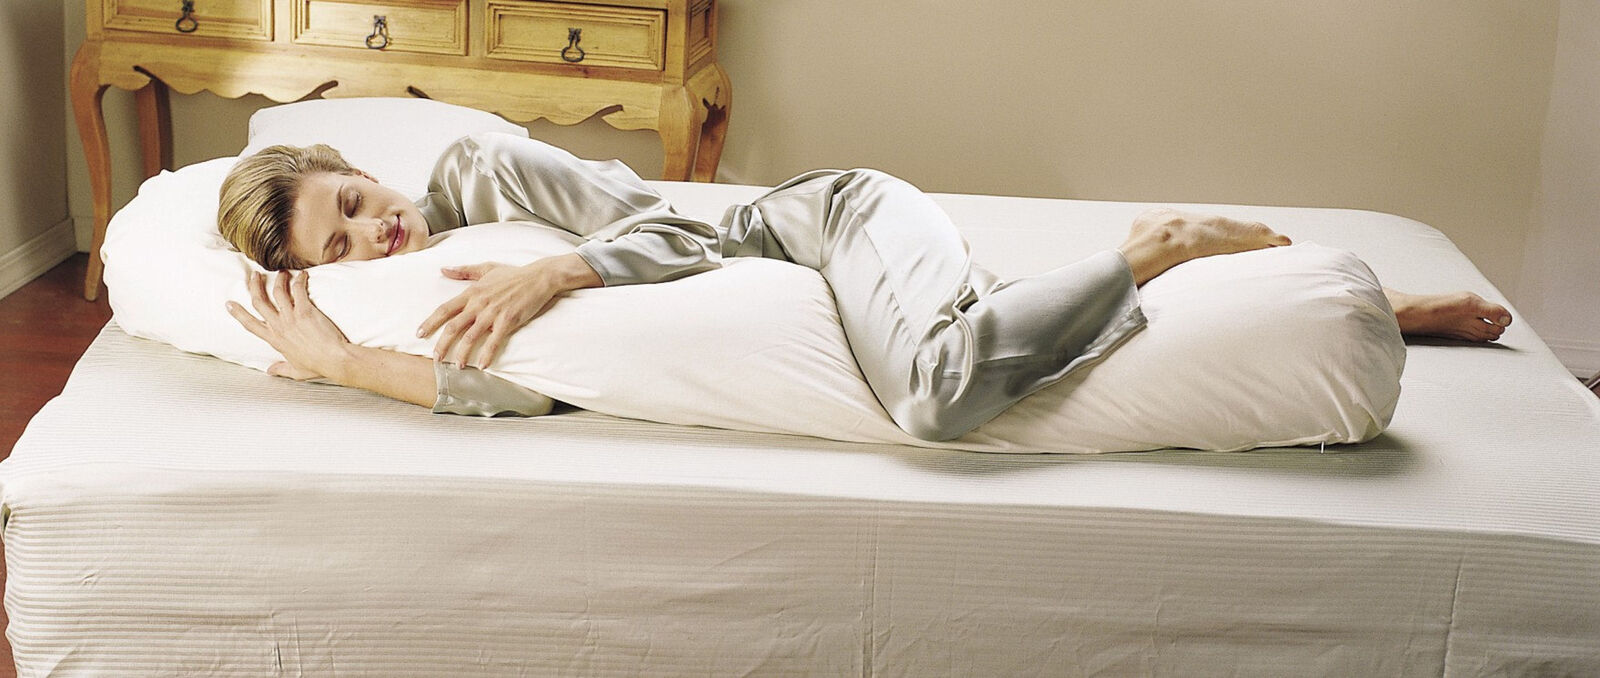 Adult Sleeping Bean Body Pillow